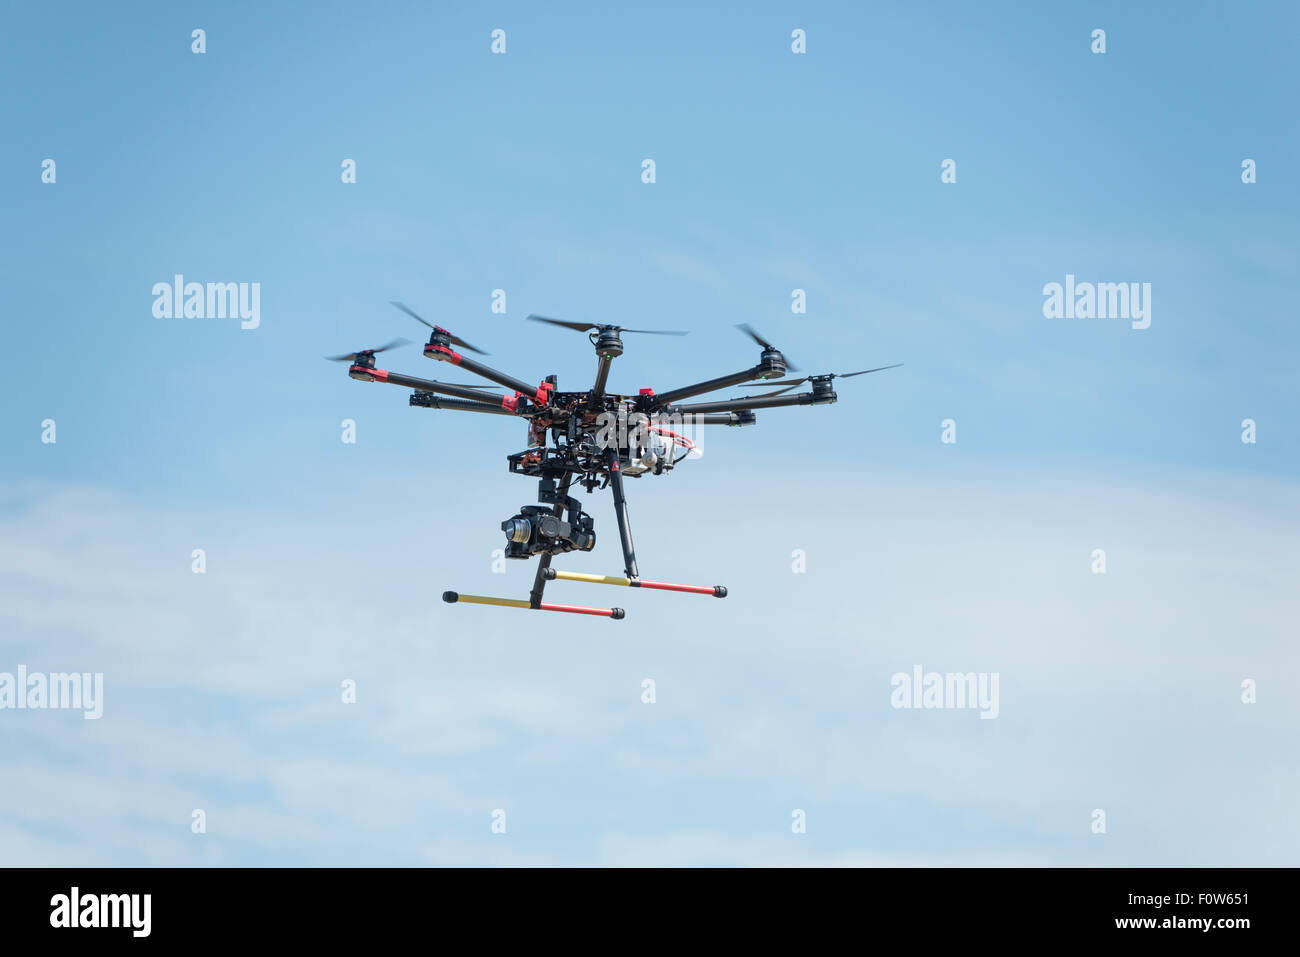 Hovering Drone - Stock Image